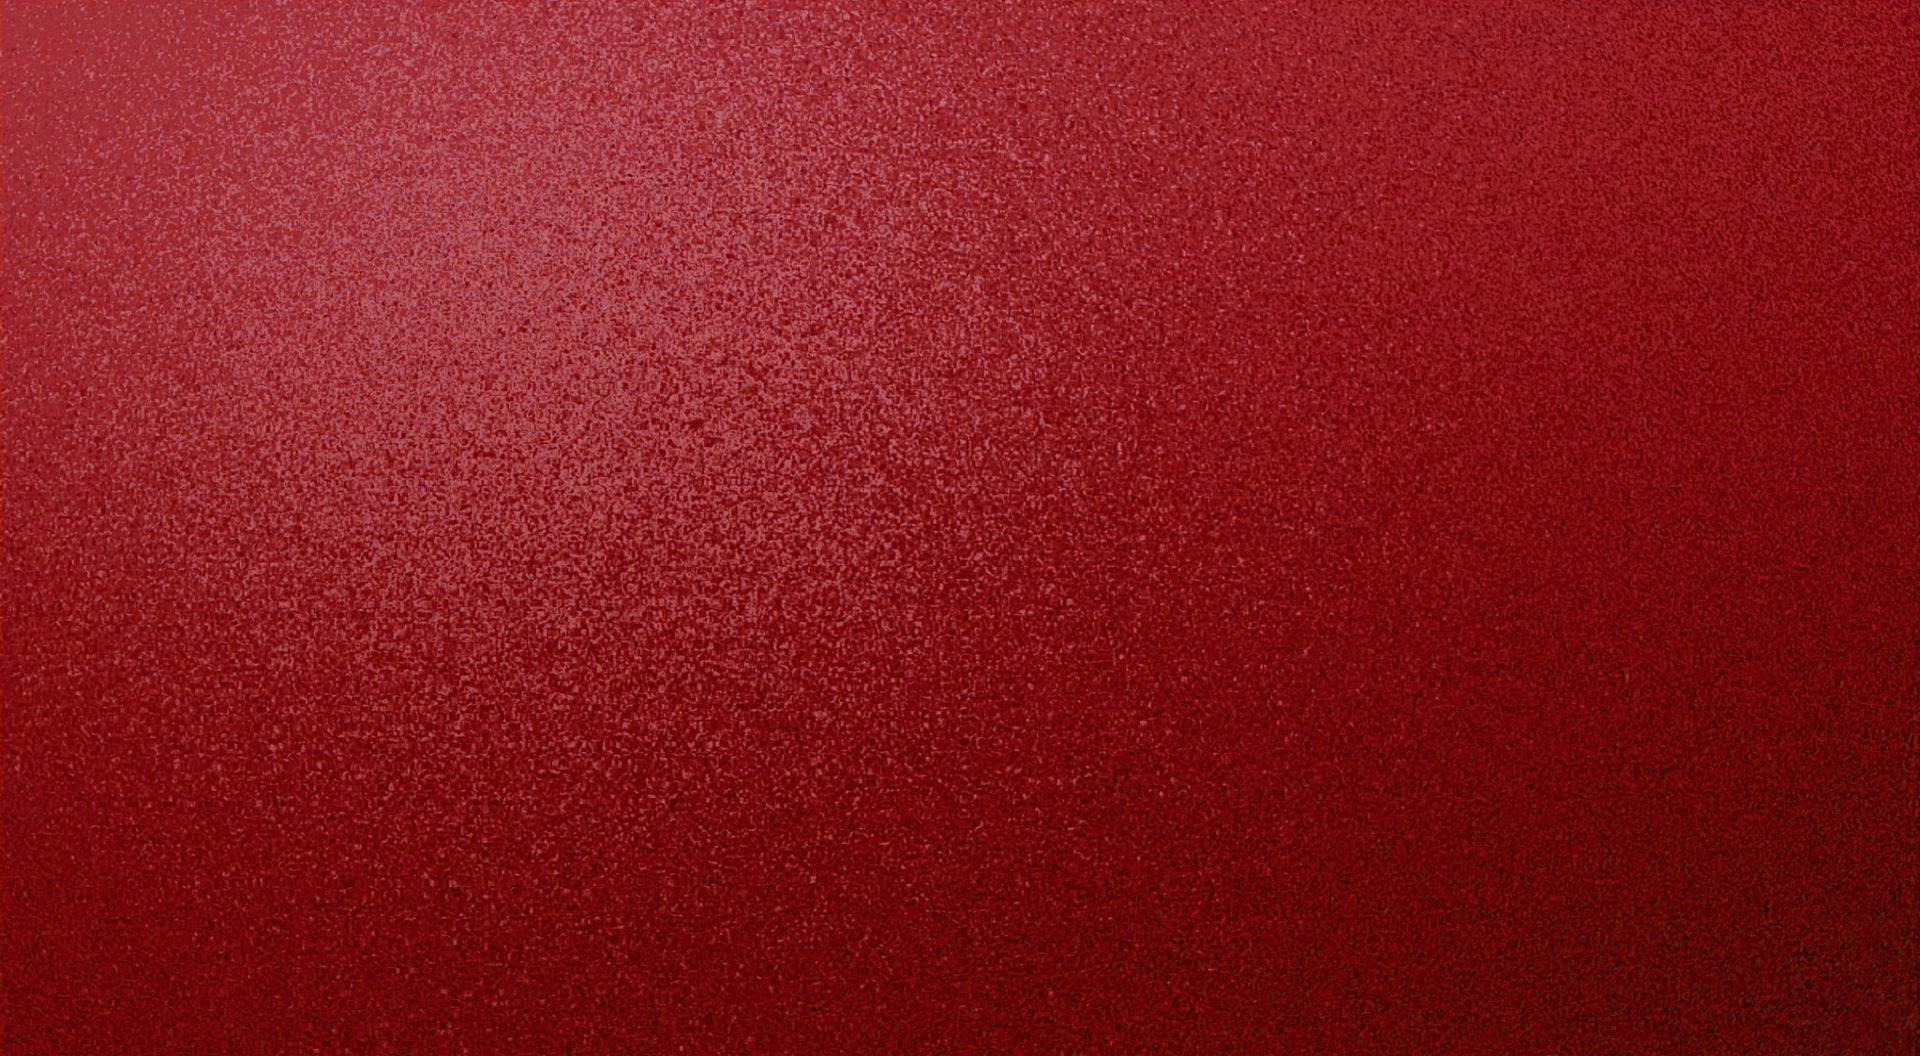 red textured background hd - photo #10